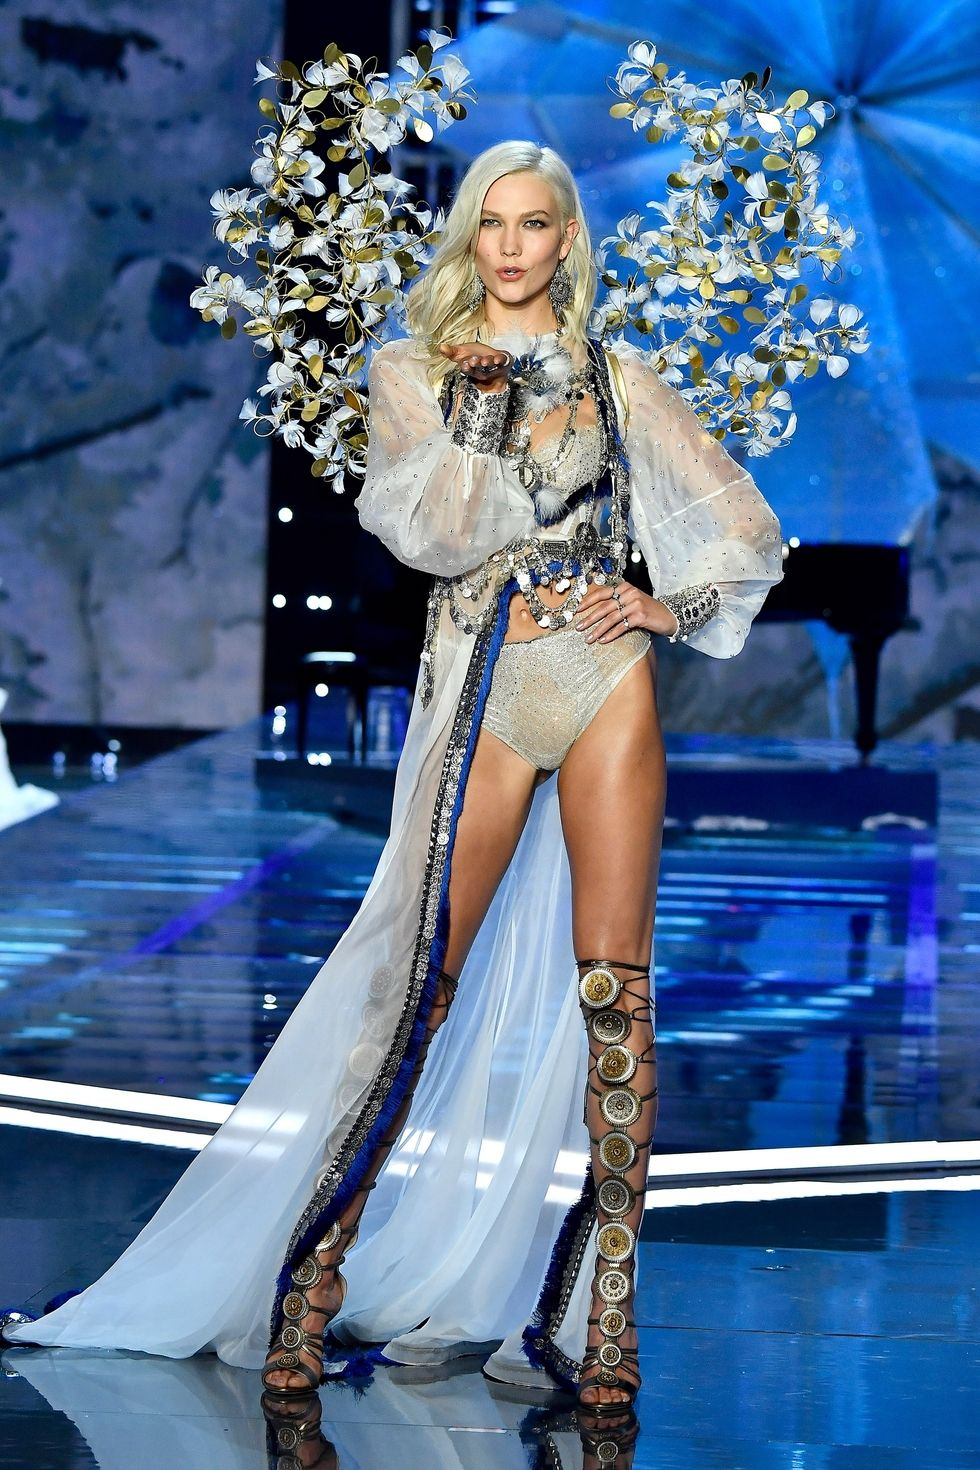 Karlie Kloss - After two years away, Kloss made her triumphant return to the runway. The sheer all-white look is accented so well by the silver and blue drapings.